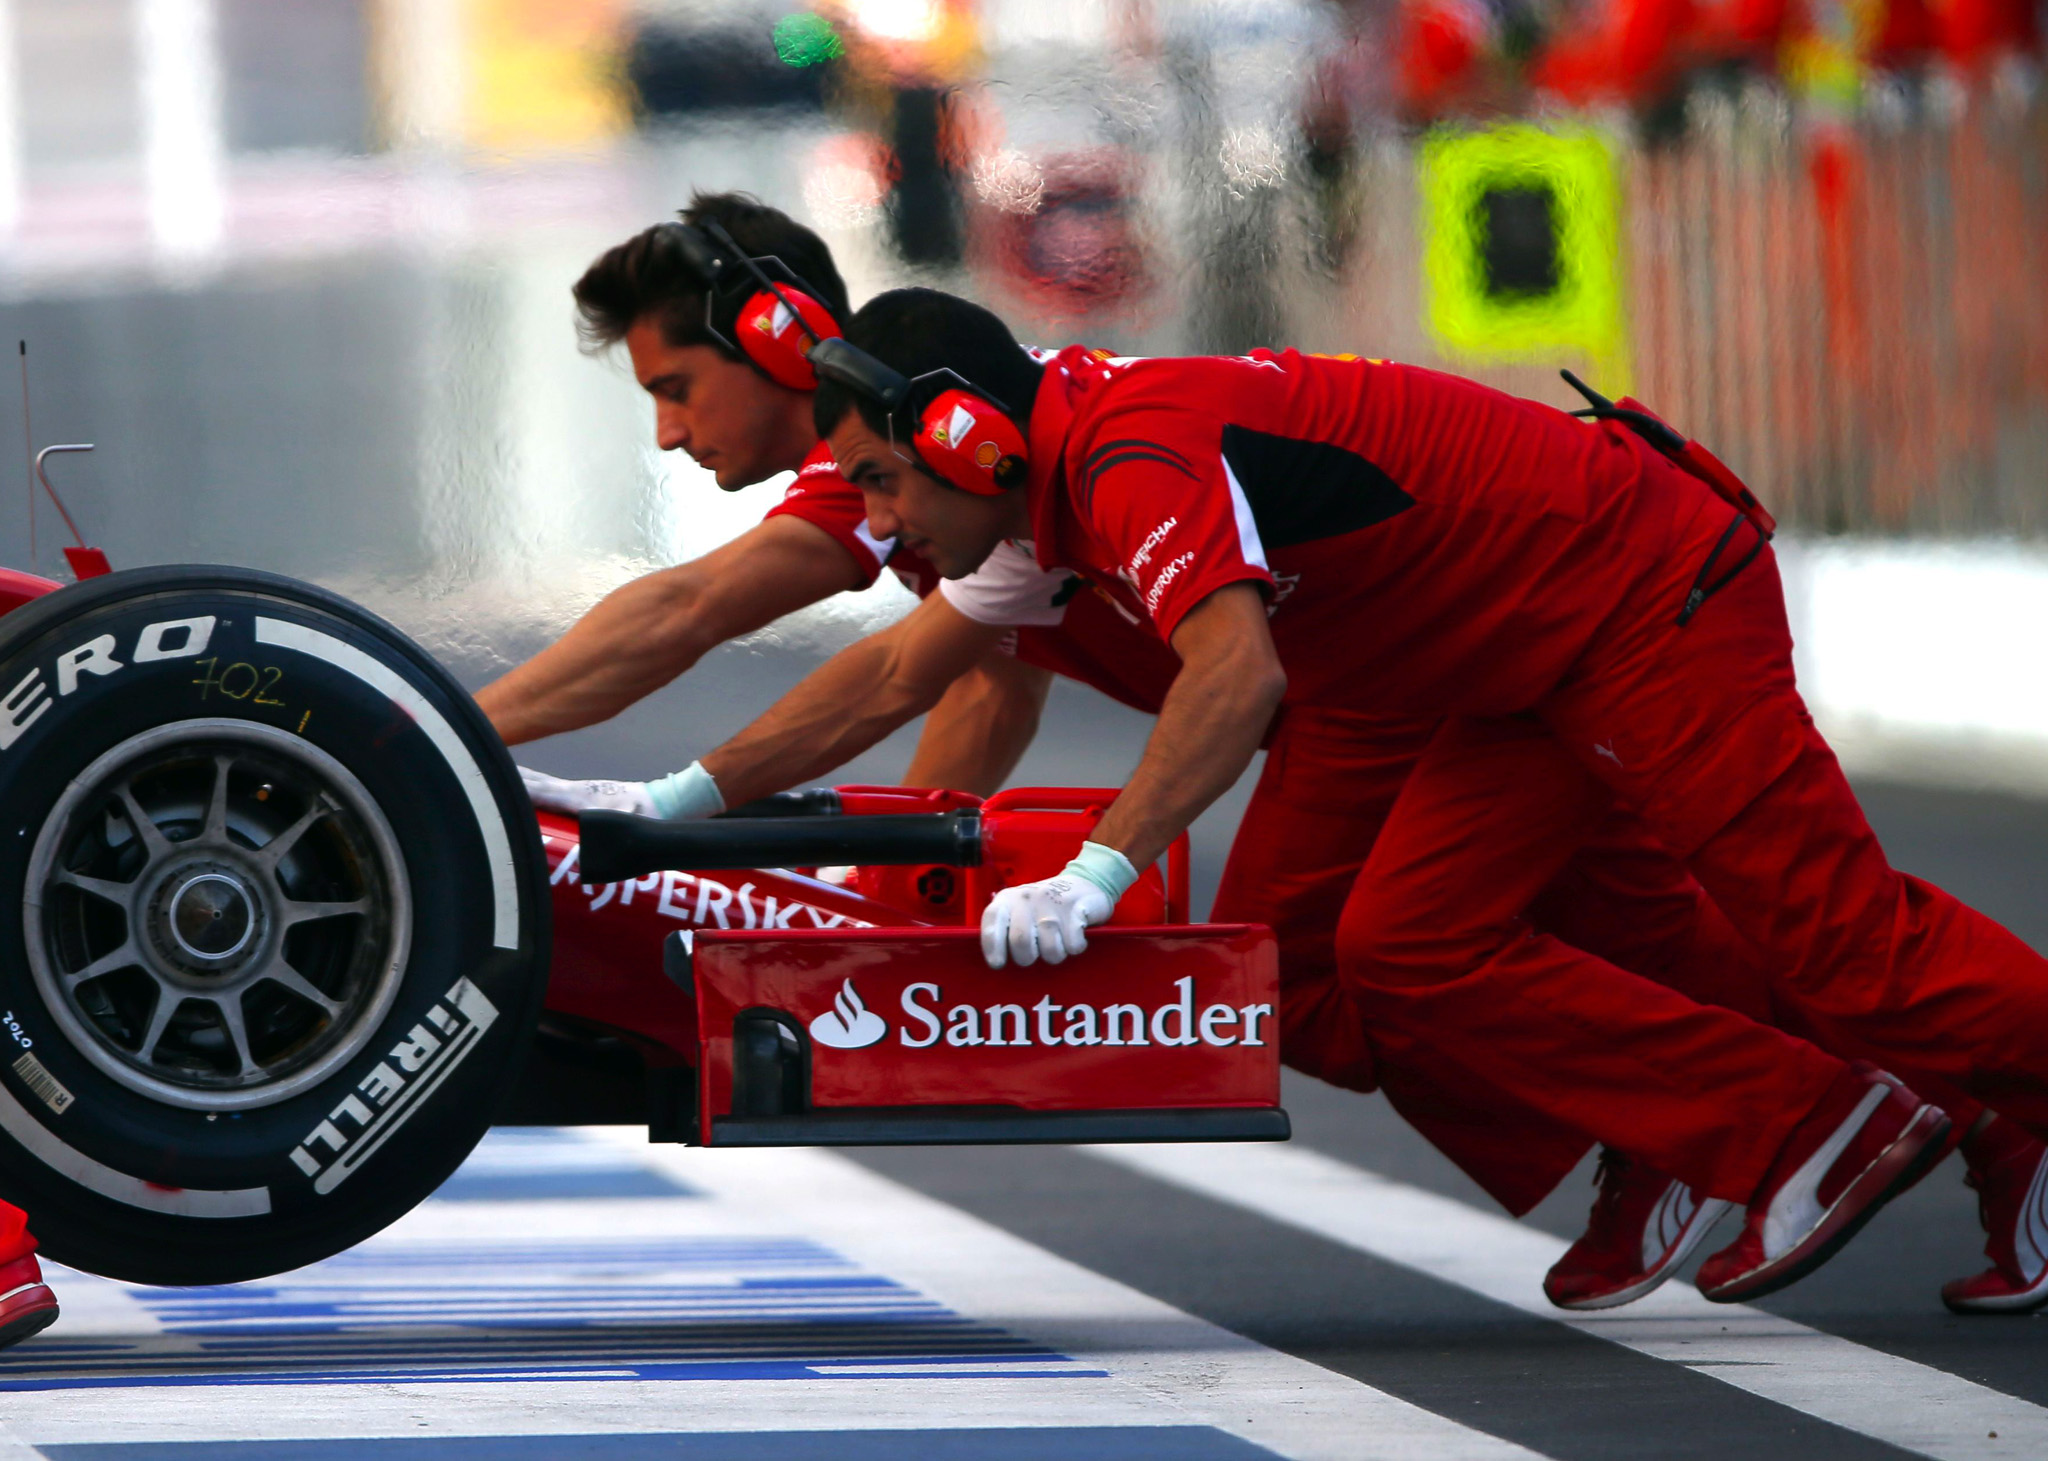 Ferrari Formula One mechanics push the car of Kimi Raikkonen of Finland during the first free practice session of the Russian F1 Grand Prix in the Sochi Autodrom circuit.